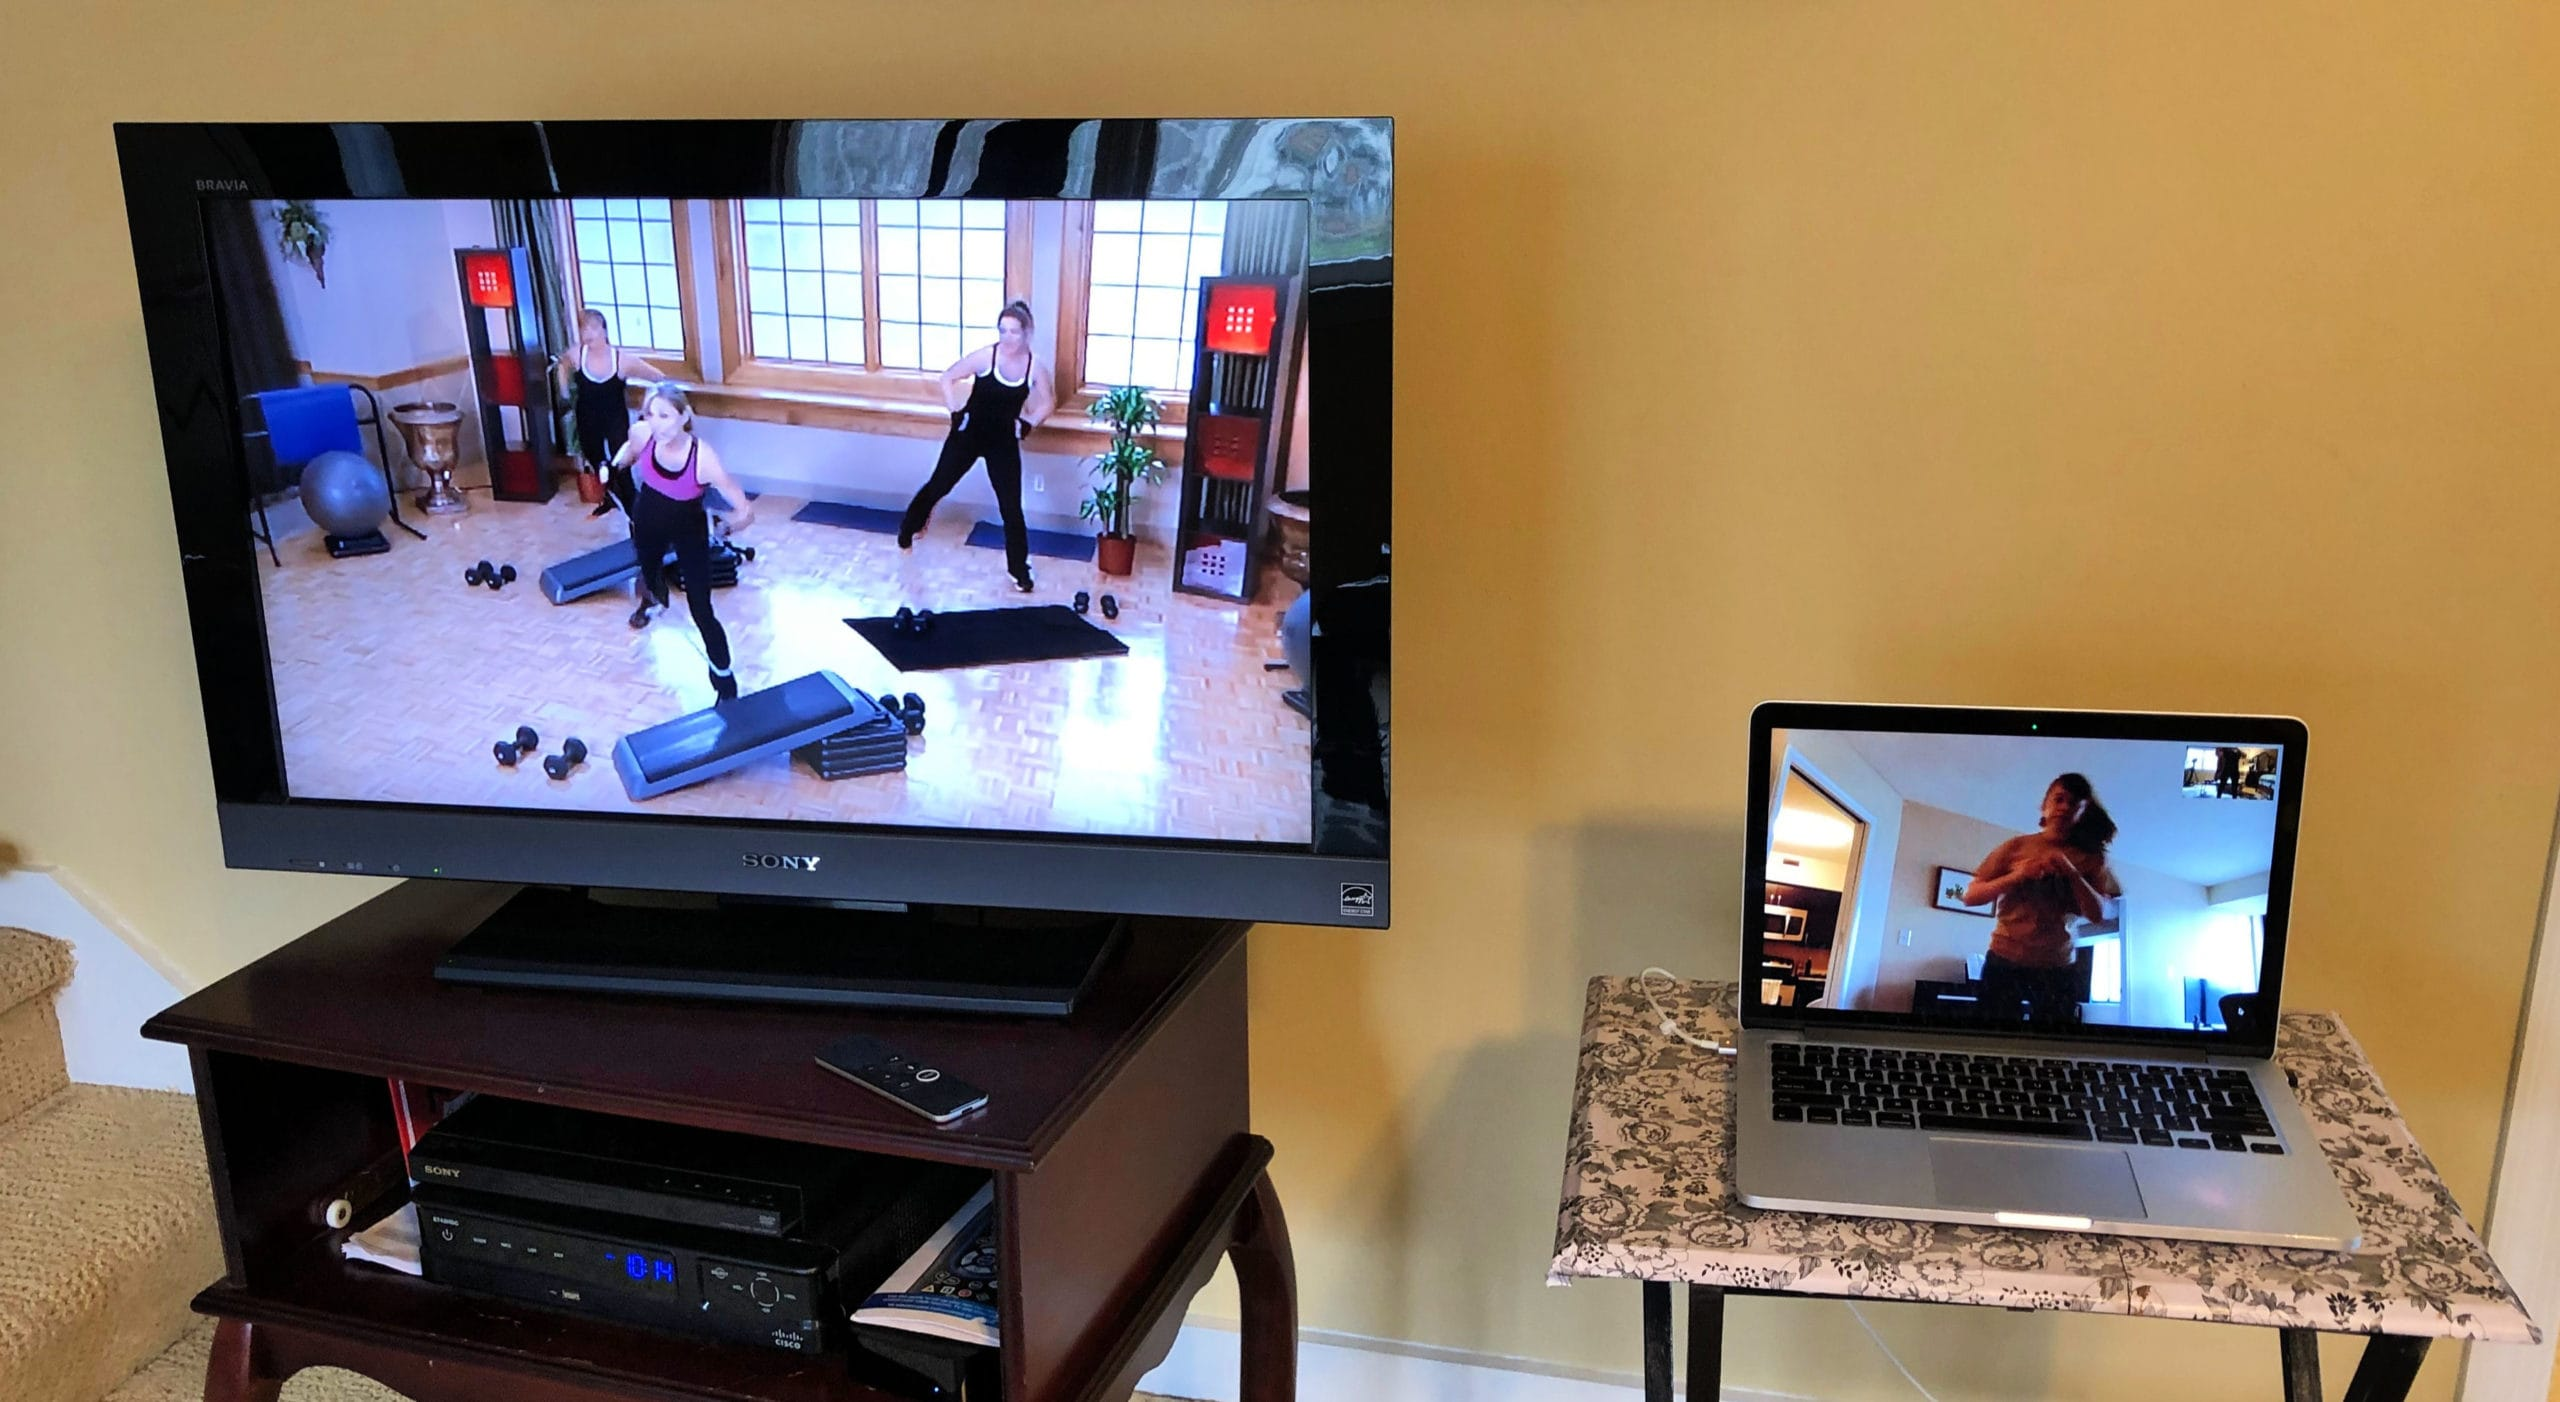 Working out at home using FaceTime and a TV